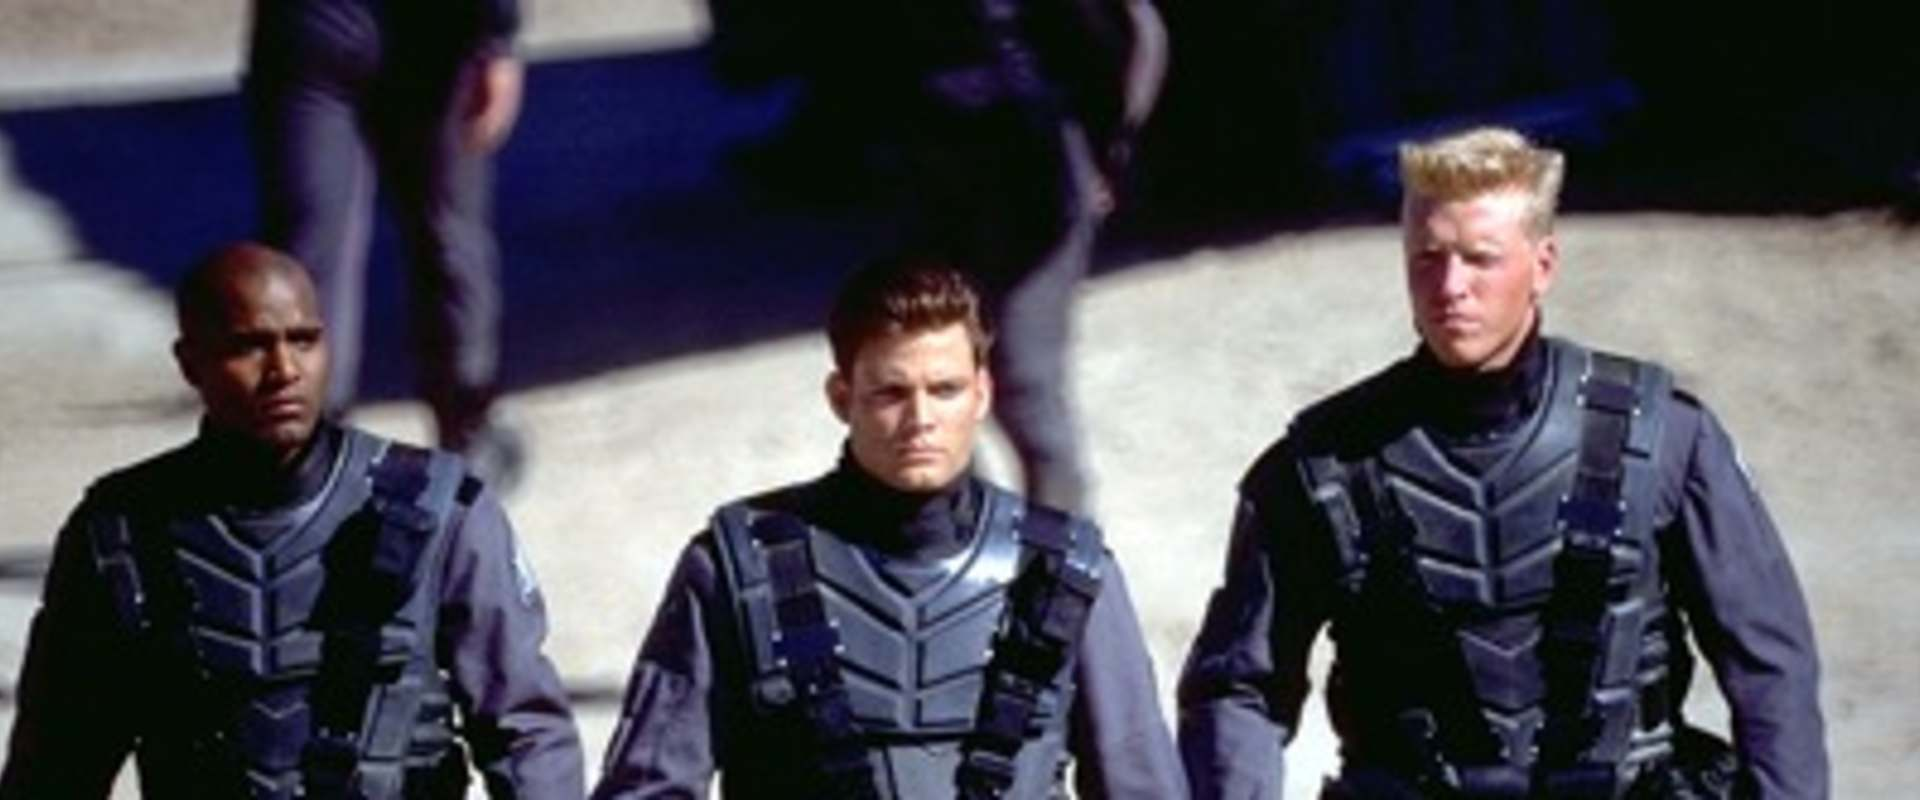 Starship Troopers background 2